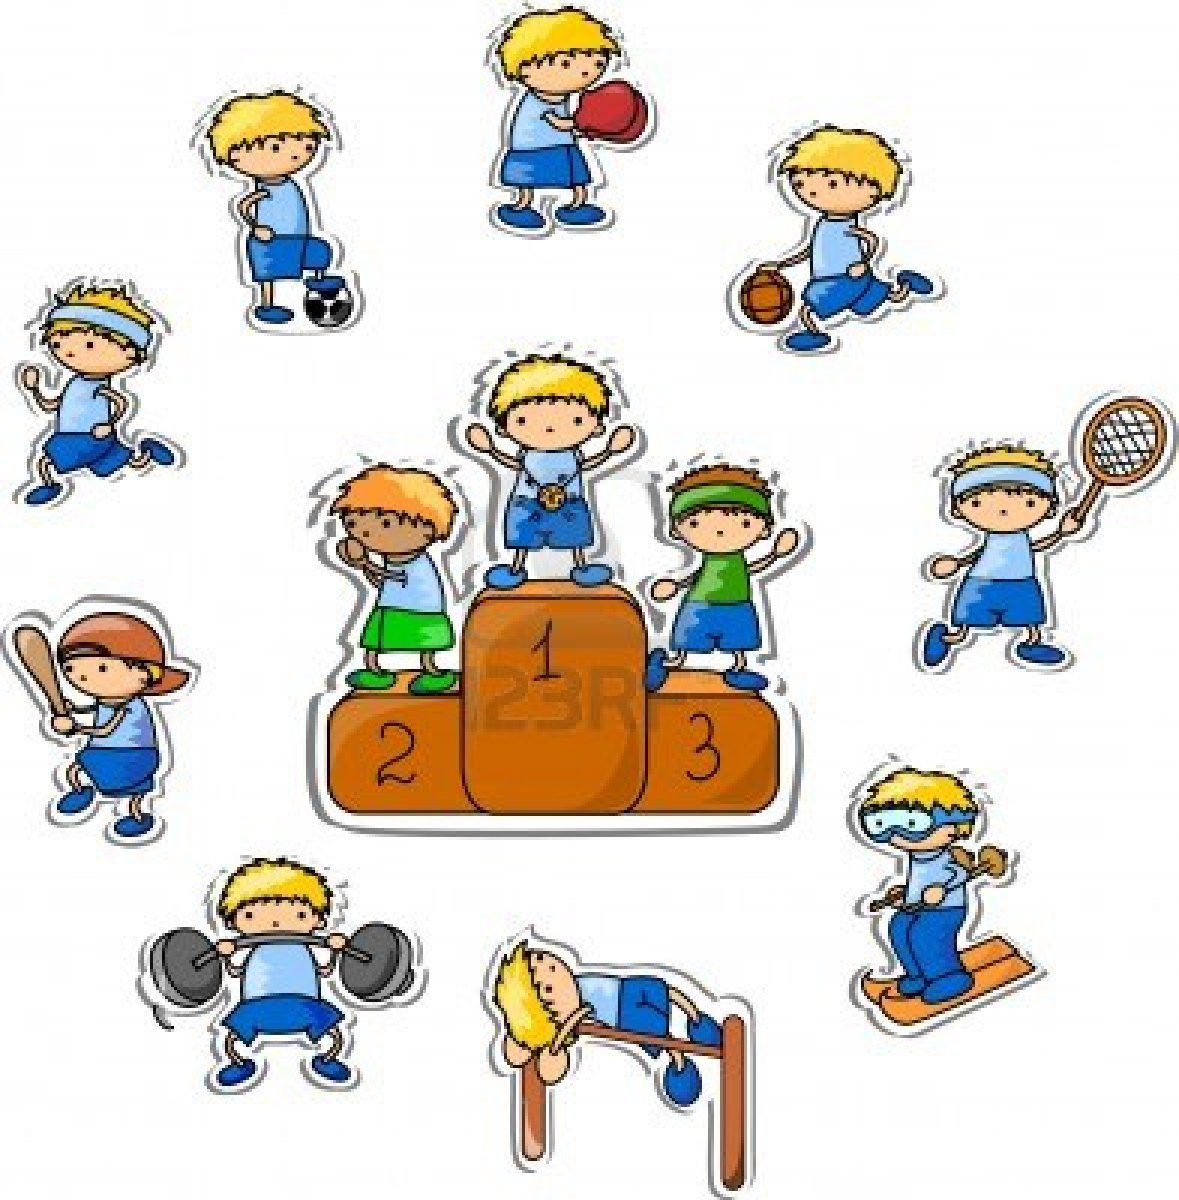 Carnival clipart sports carnival. Cartoon images of when